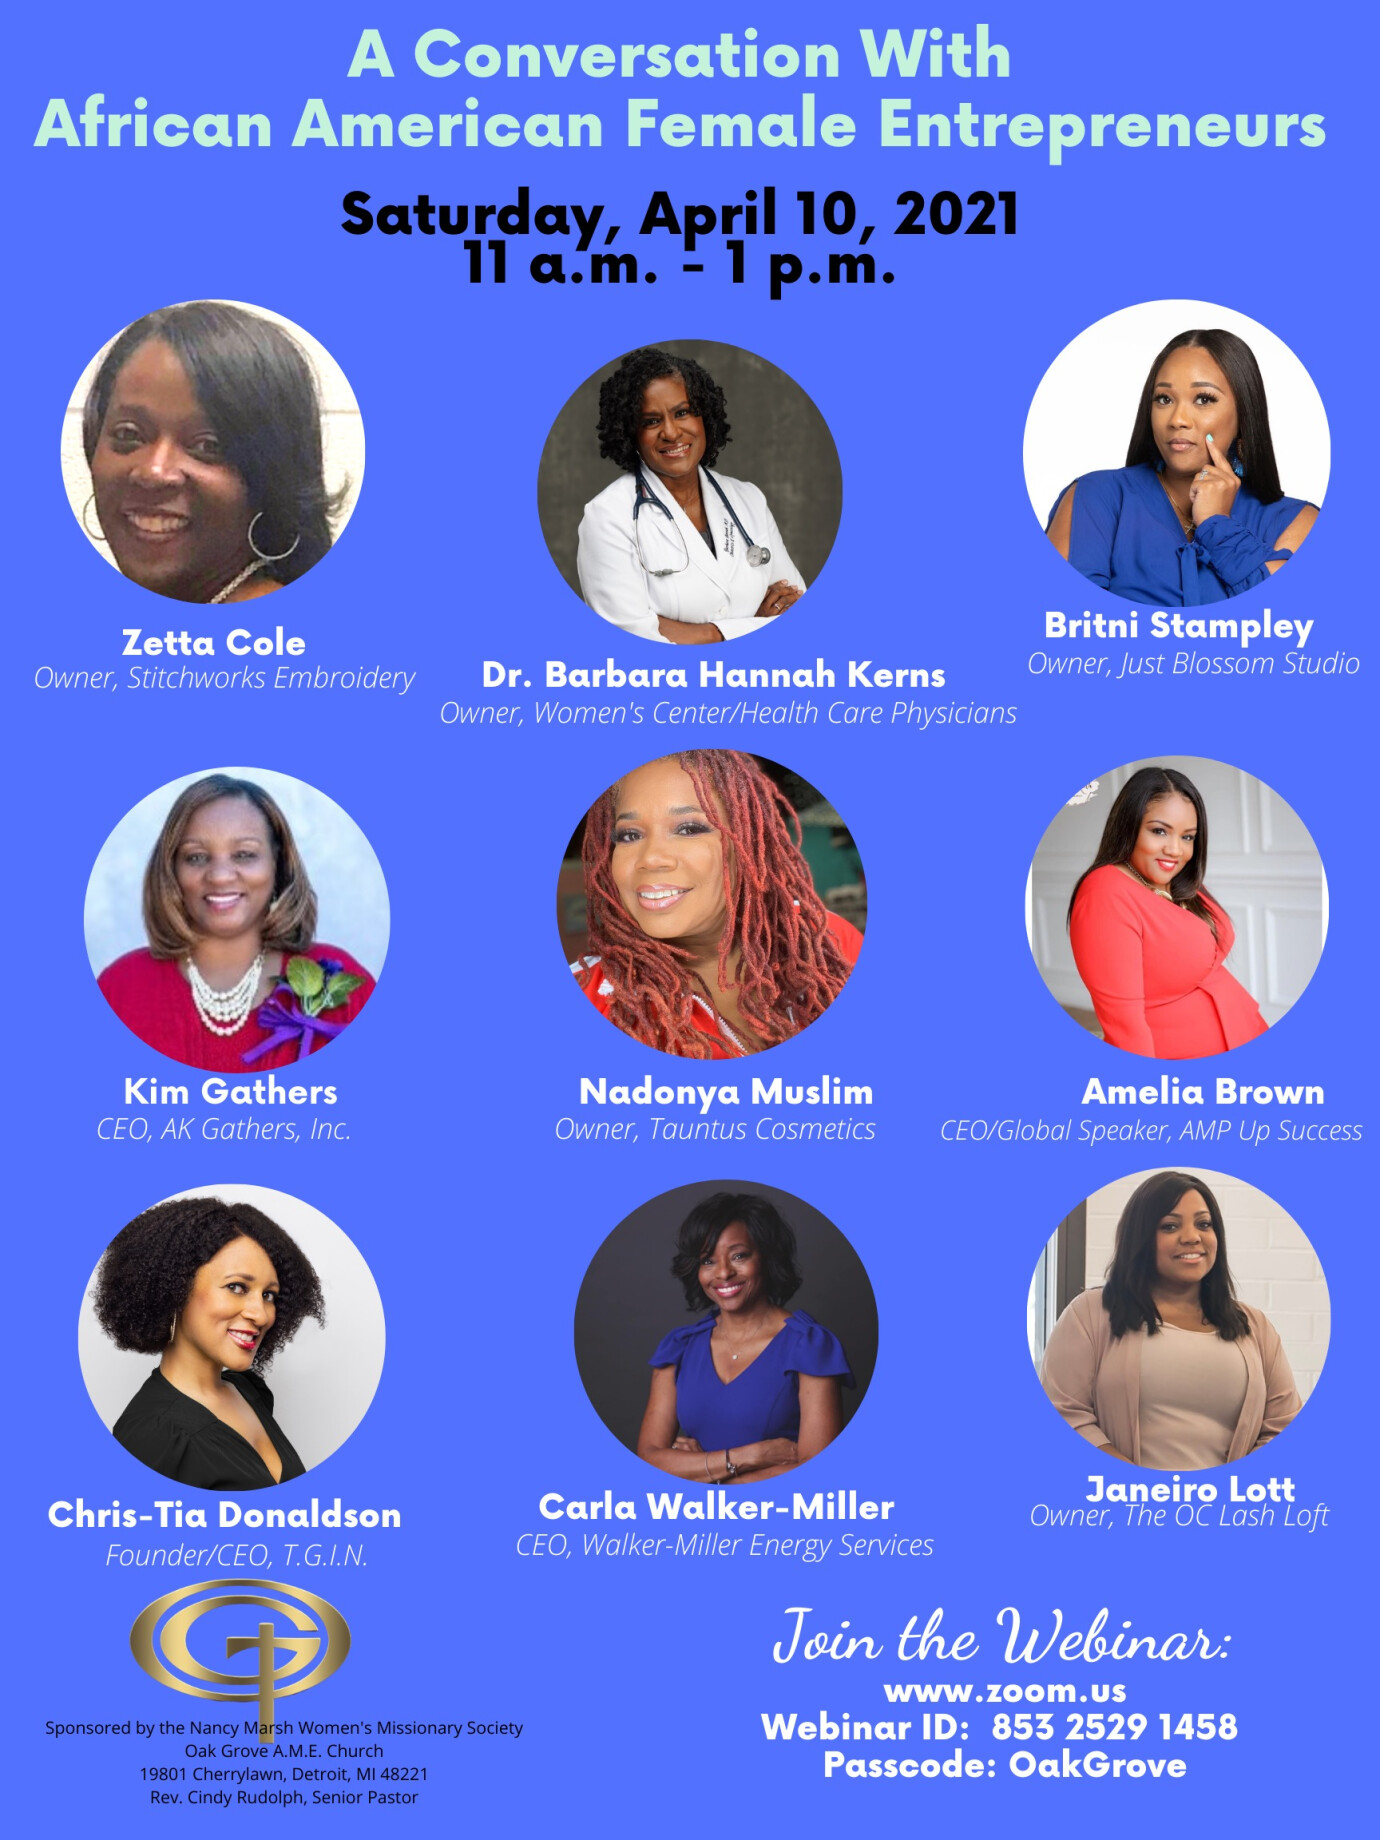 A Virtual Conversation with African American Female Entrepreneurs